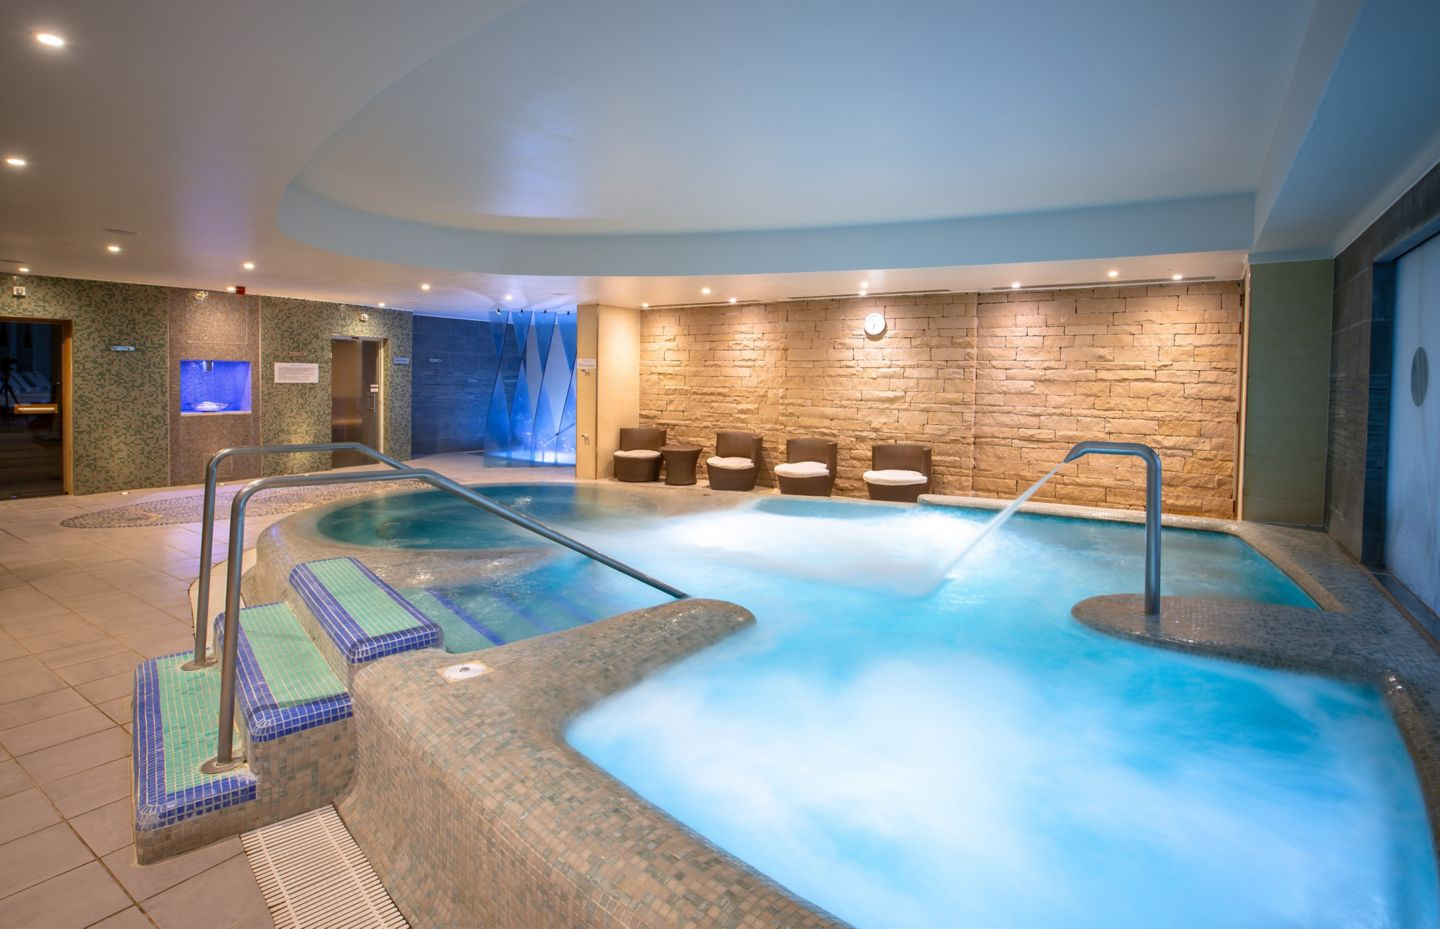 Hydrotherapy suite in the Kohler Waters Spa